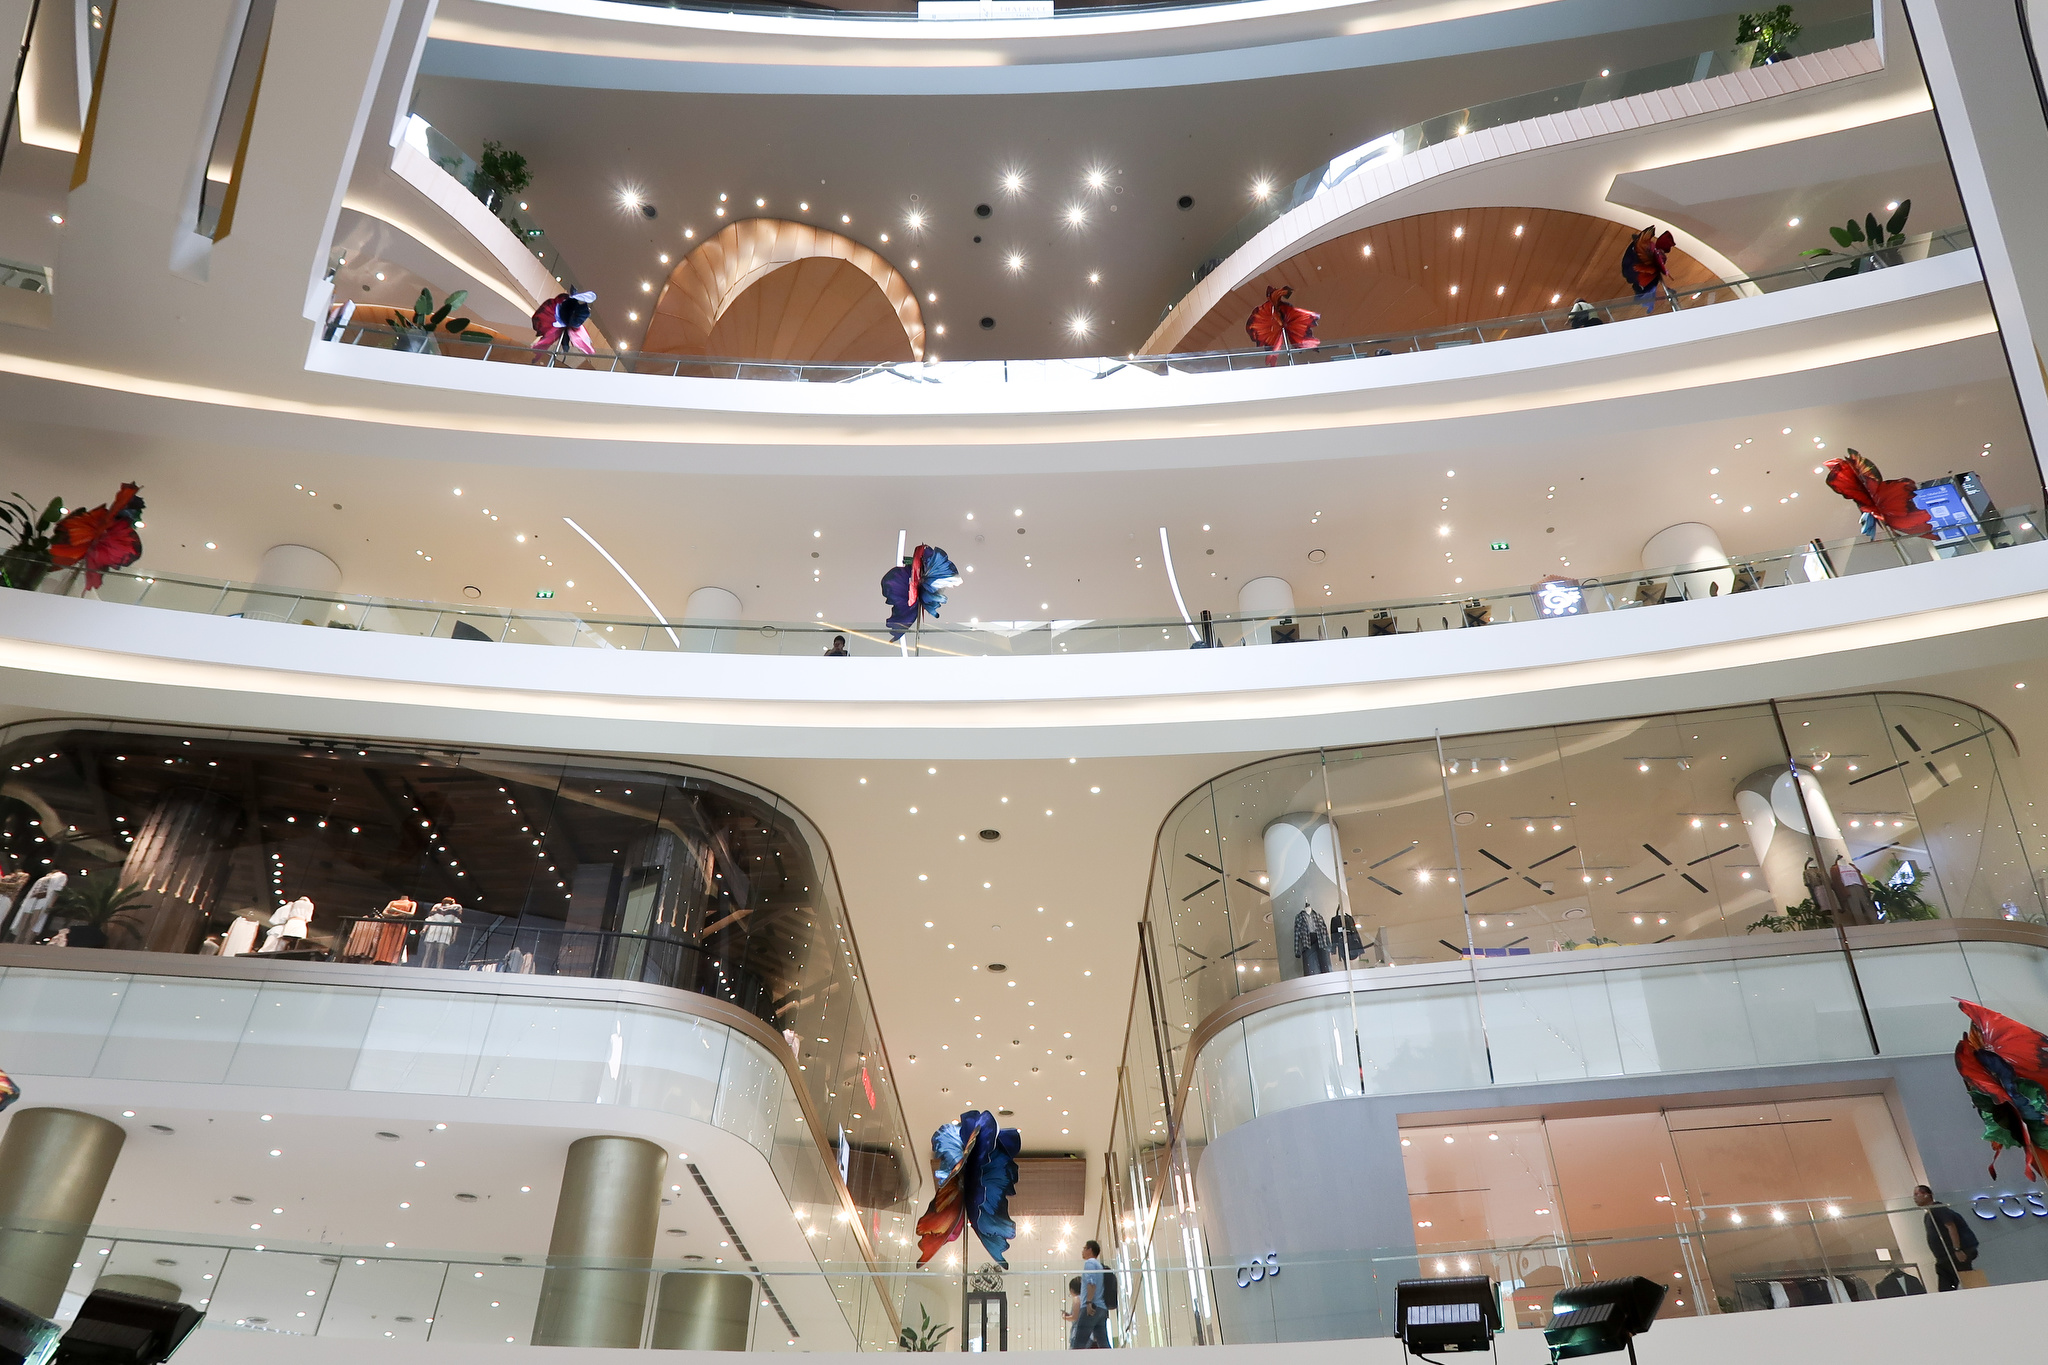 Inside the Iconsiam mall in Bangkok, Thailand.